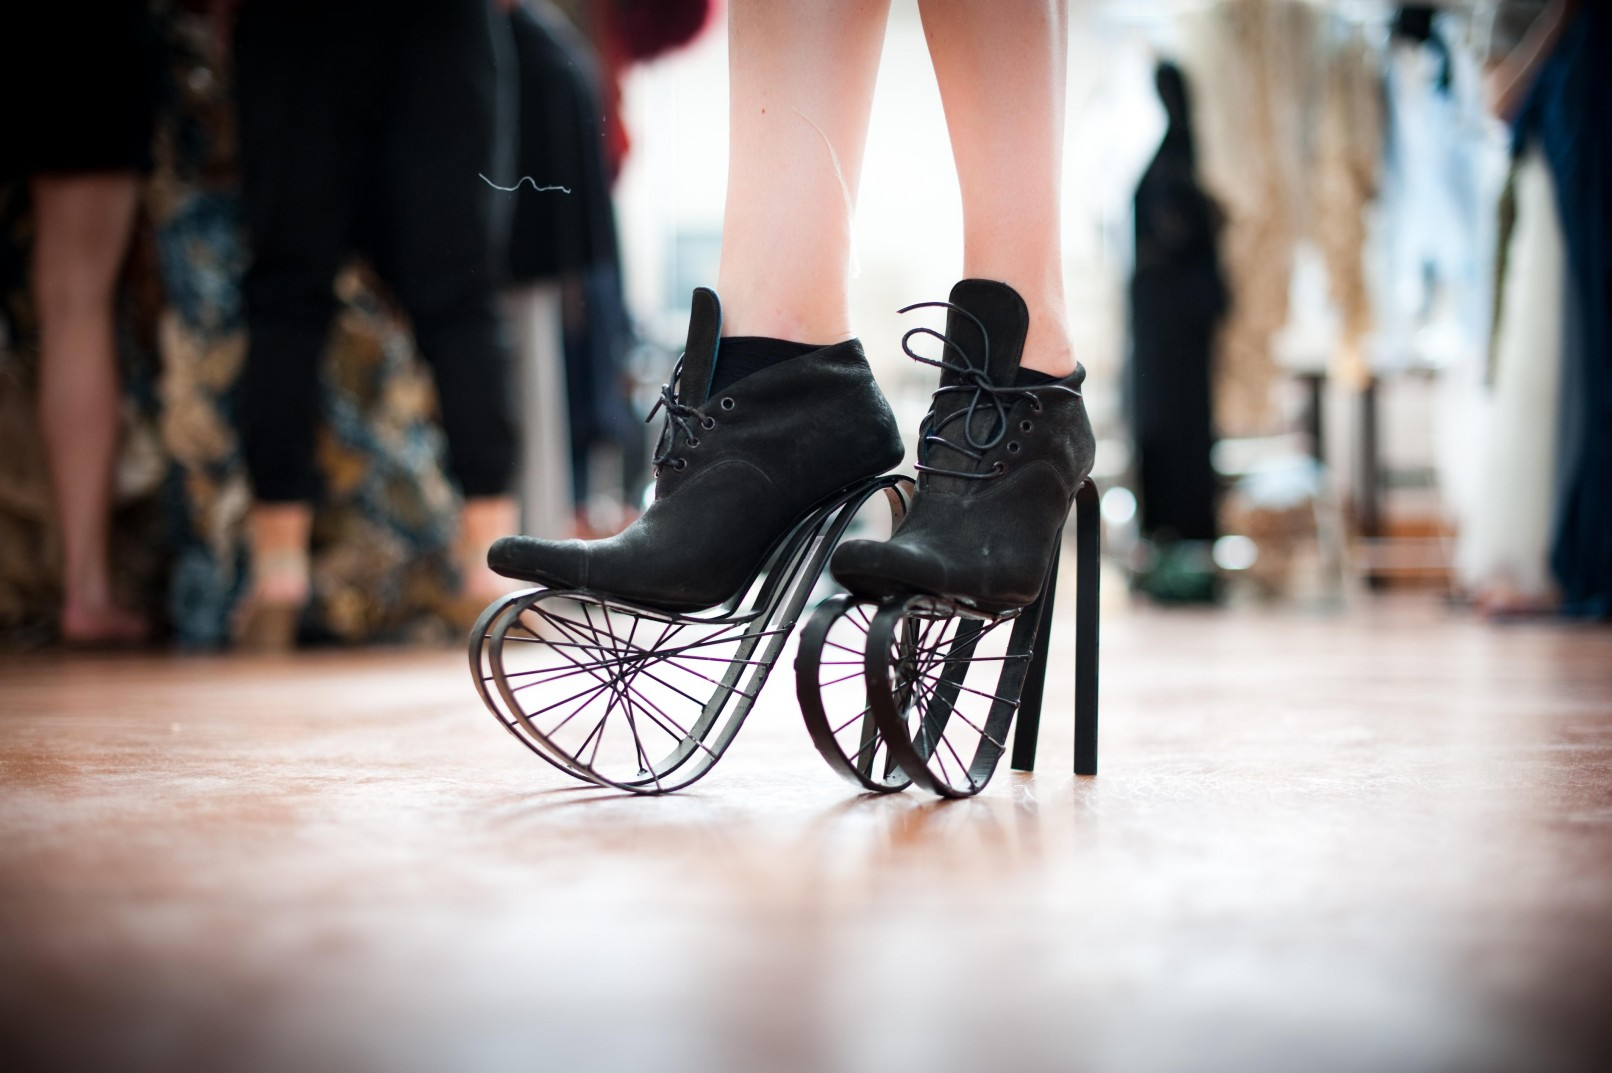 Cinderella Syndrome: A Journey In The Footsteps Of The Stiletto